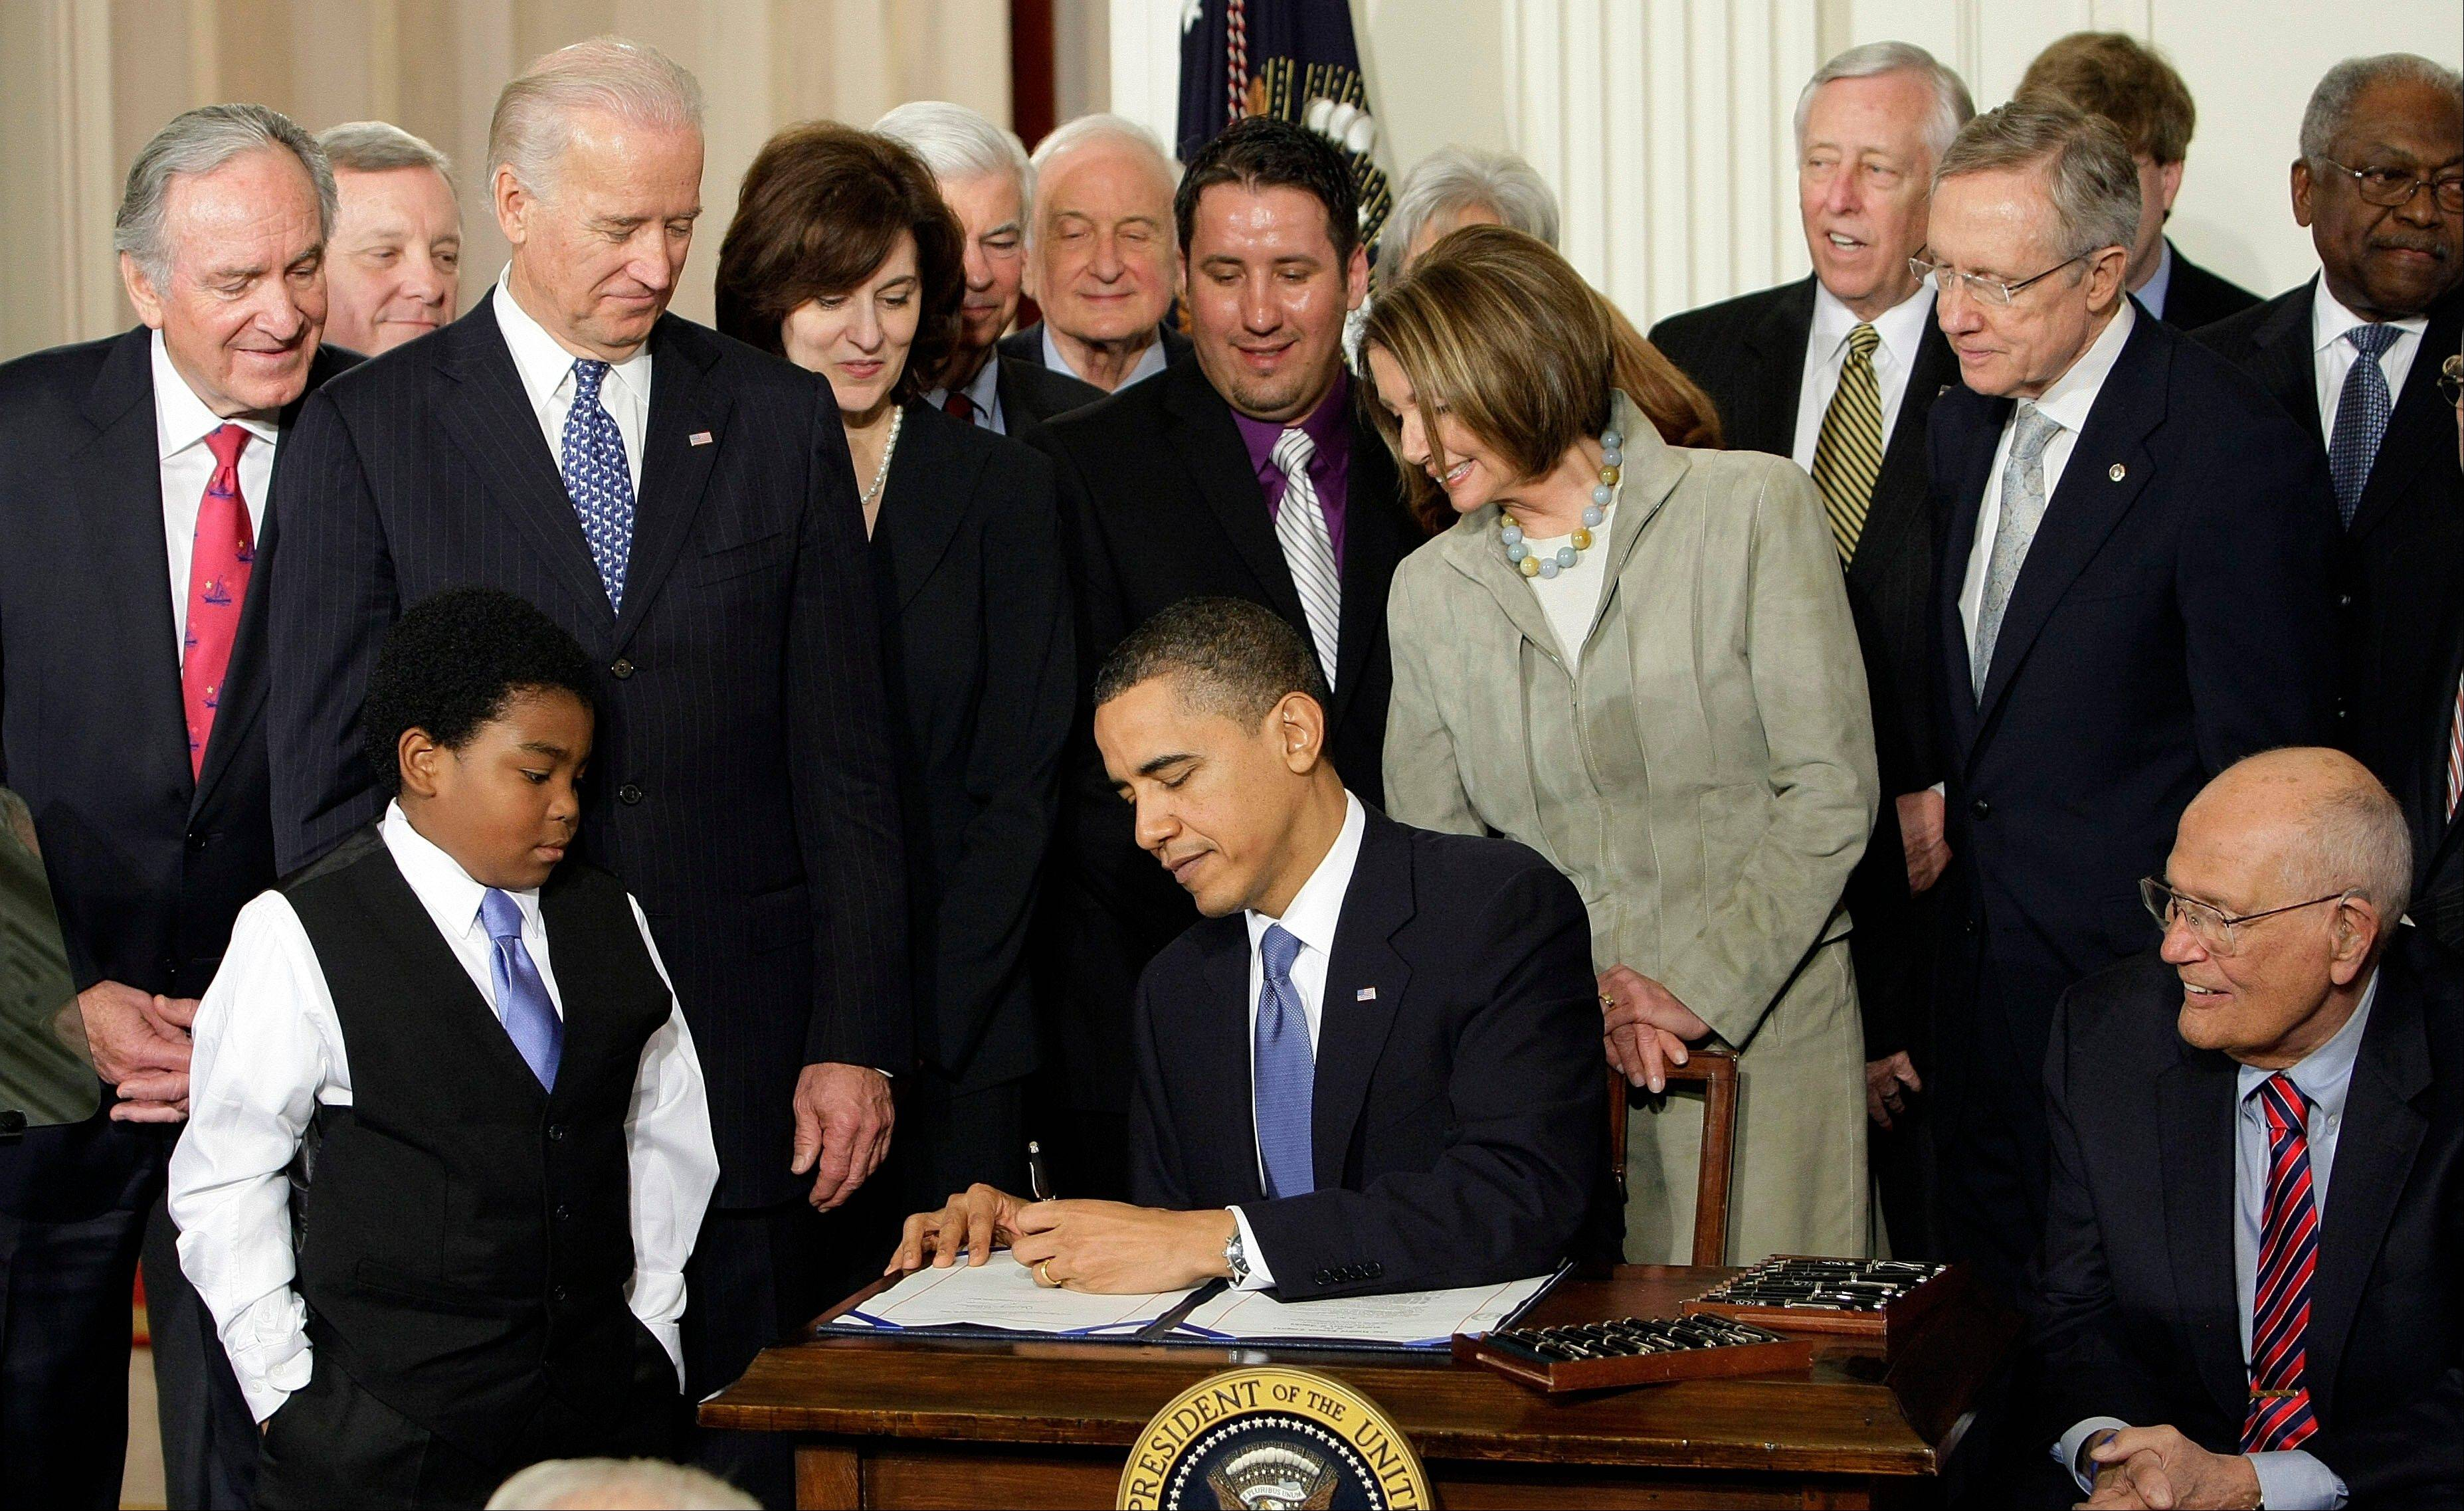 In this March 23, 2010, file photo, President Barack Obama signs the health care bill at the White House. Medical claims costs, the biggest driver of health insurance premiums, will jump an average 32 percent for individual policies under the overhaul, according to a study by the nation�s leading group of financial risk analysts.